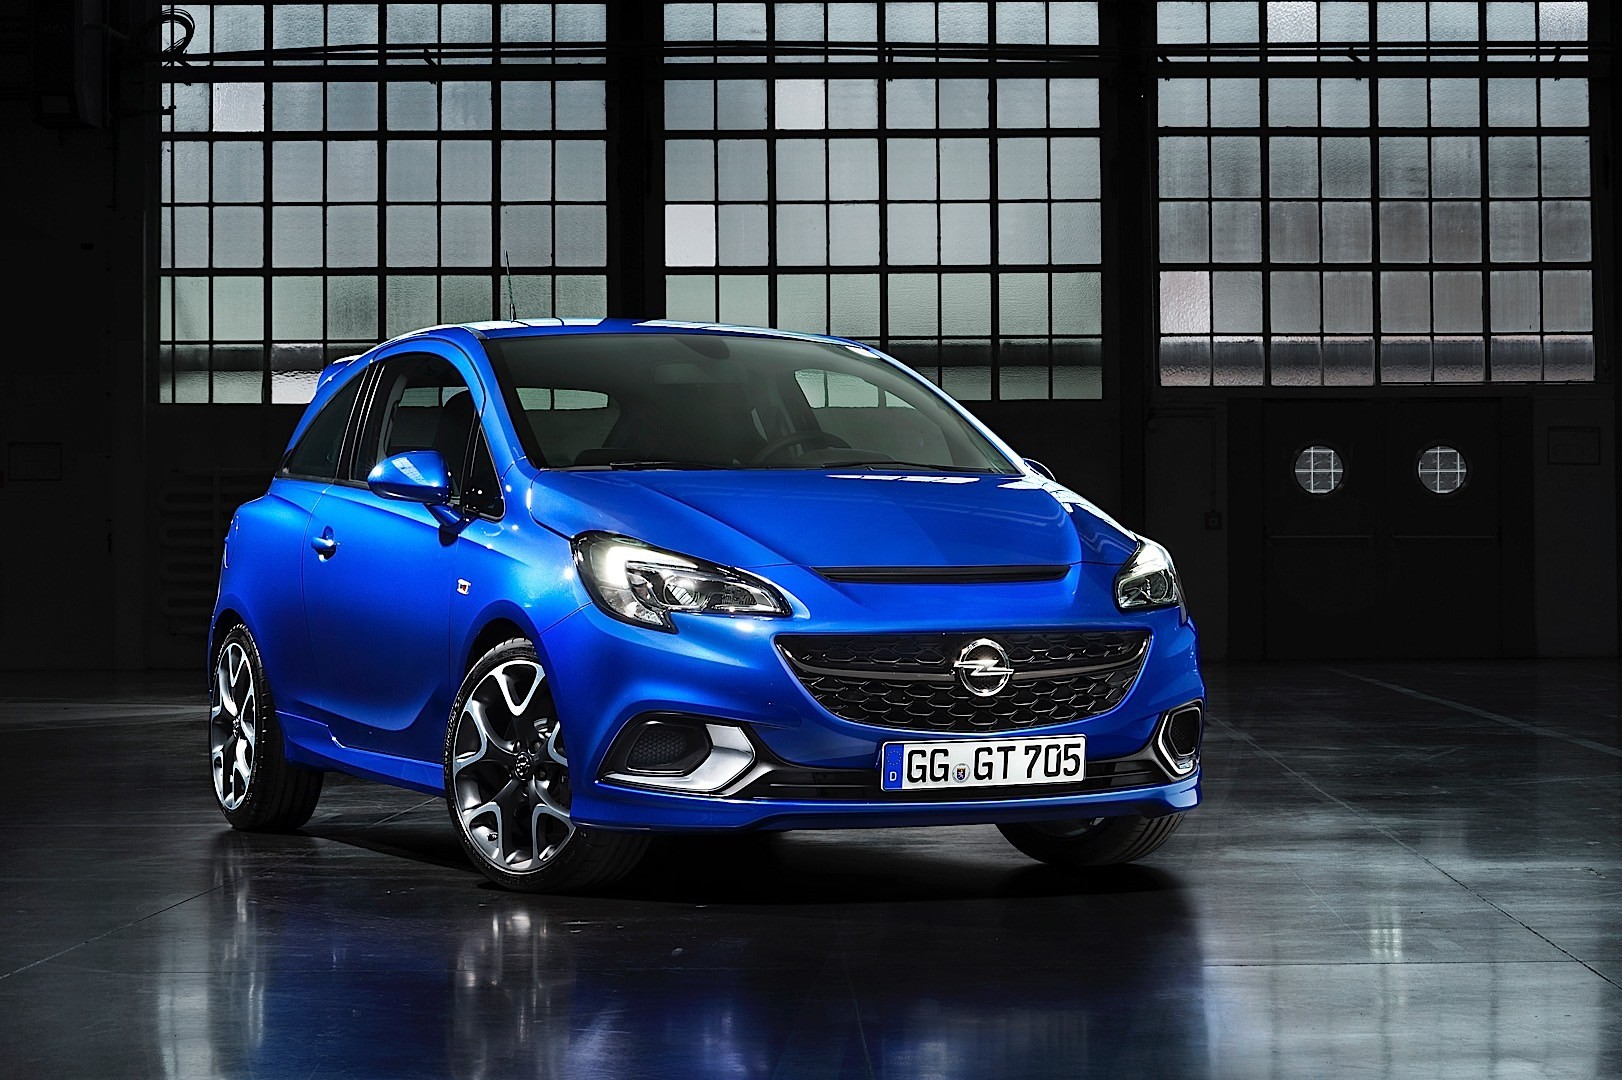 Twin City Auto >> OPEL Corsa OPC specs & photos - 2015, 2016, 2017, 2018, 2019 - autoevolution